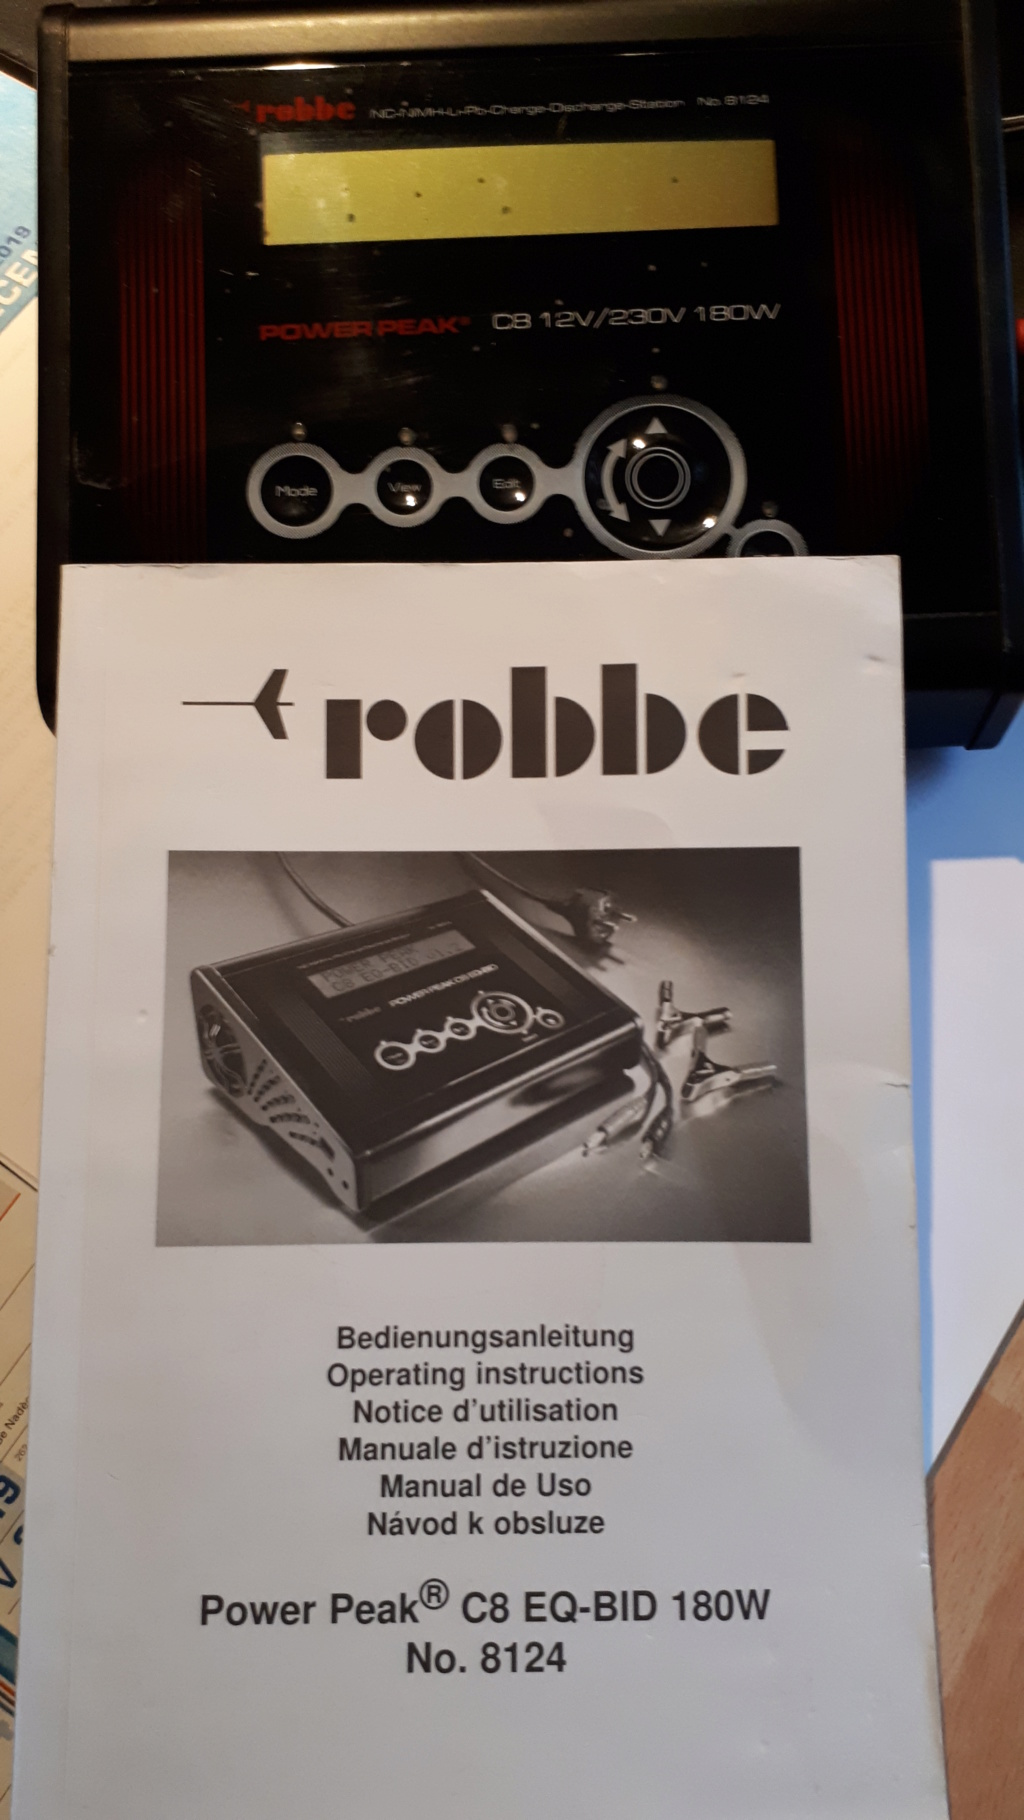 chargeur robbe 20200110